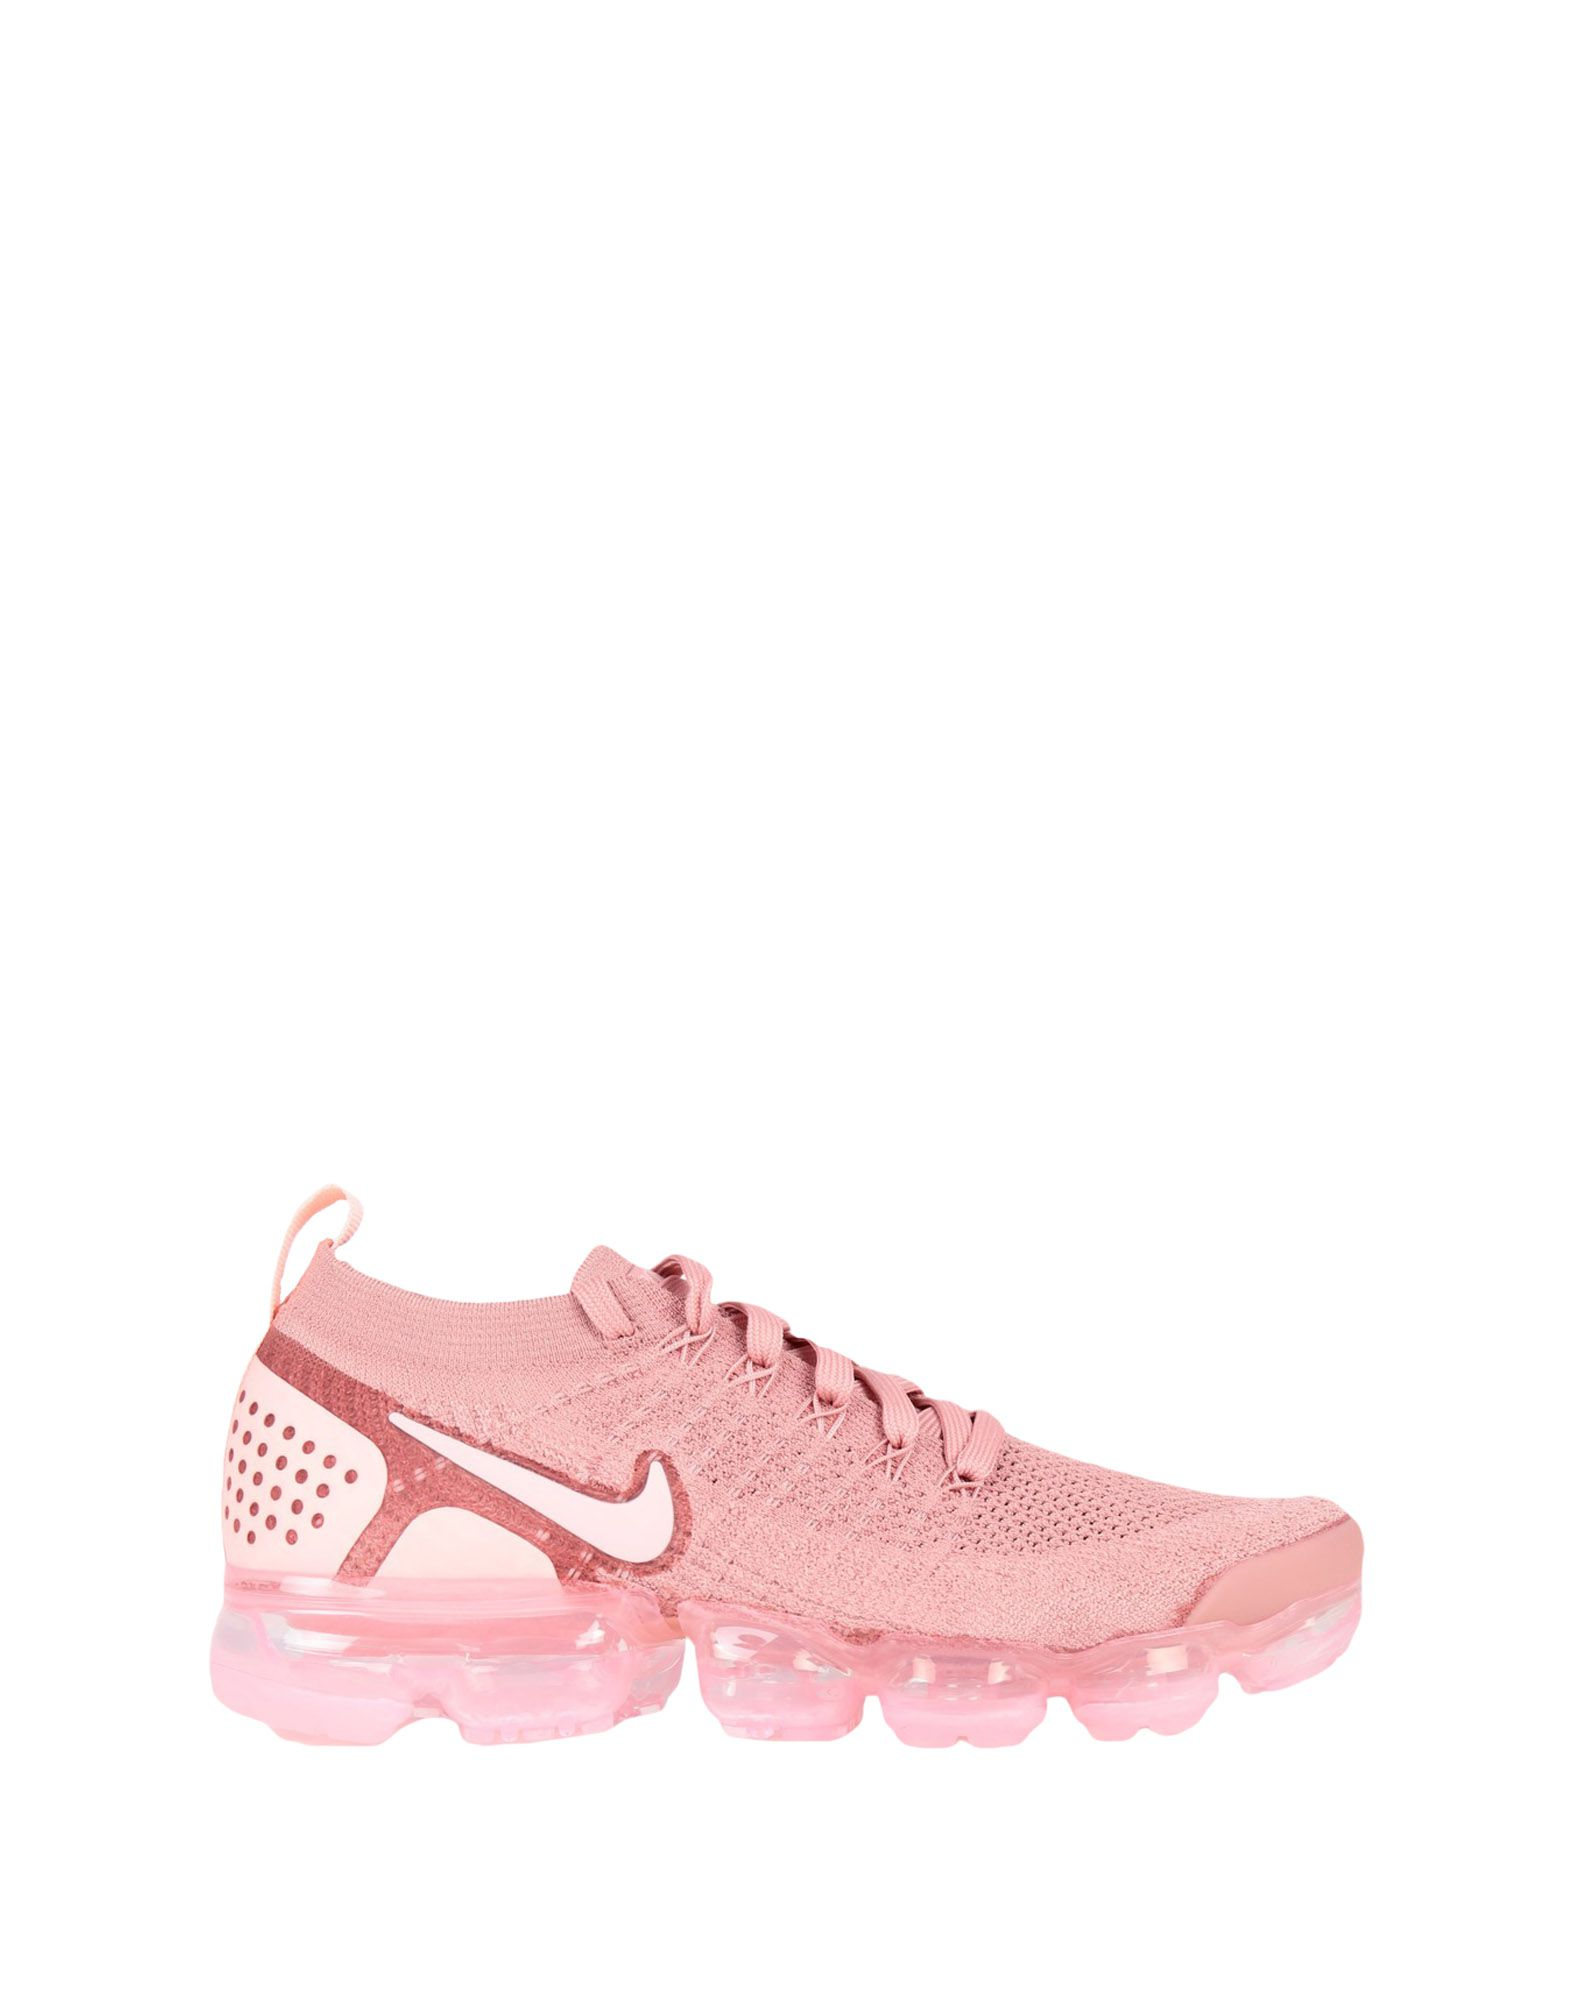 Baskets Nike  Air Vapormax Flyknit 2 - Femme - Baskets Nike Rose Chaussures casual sauvages